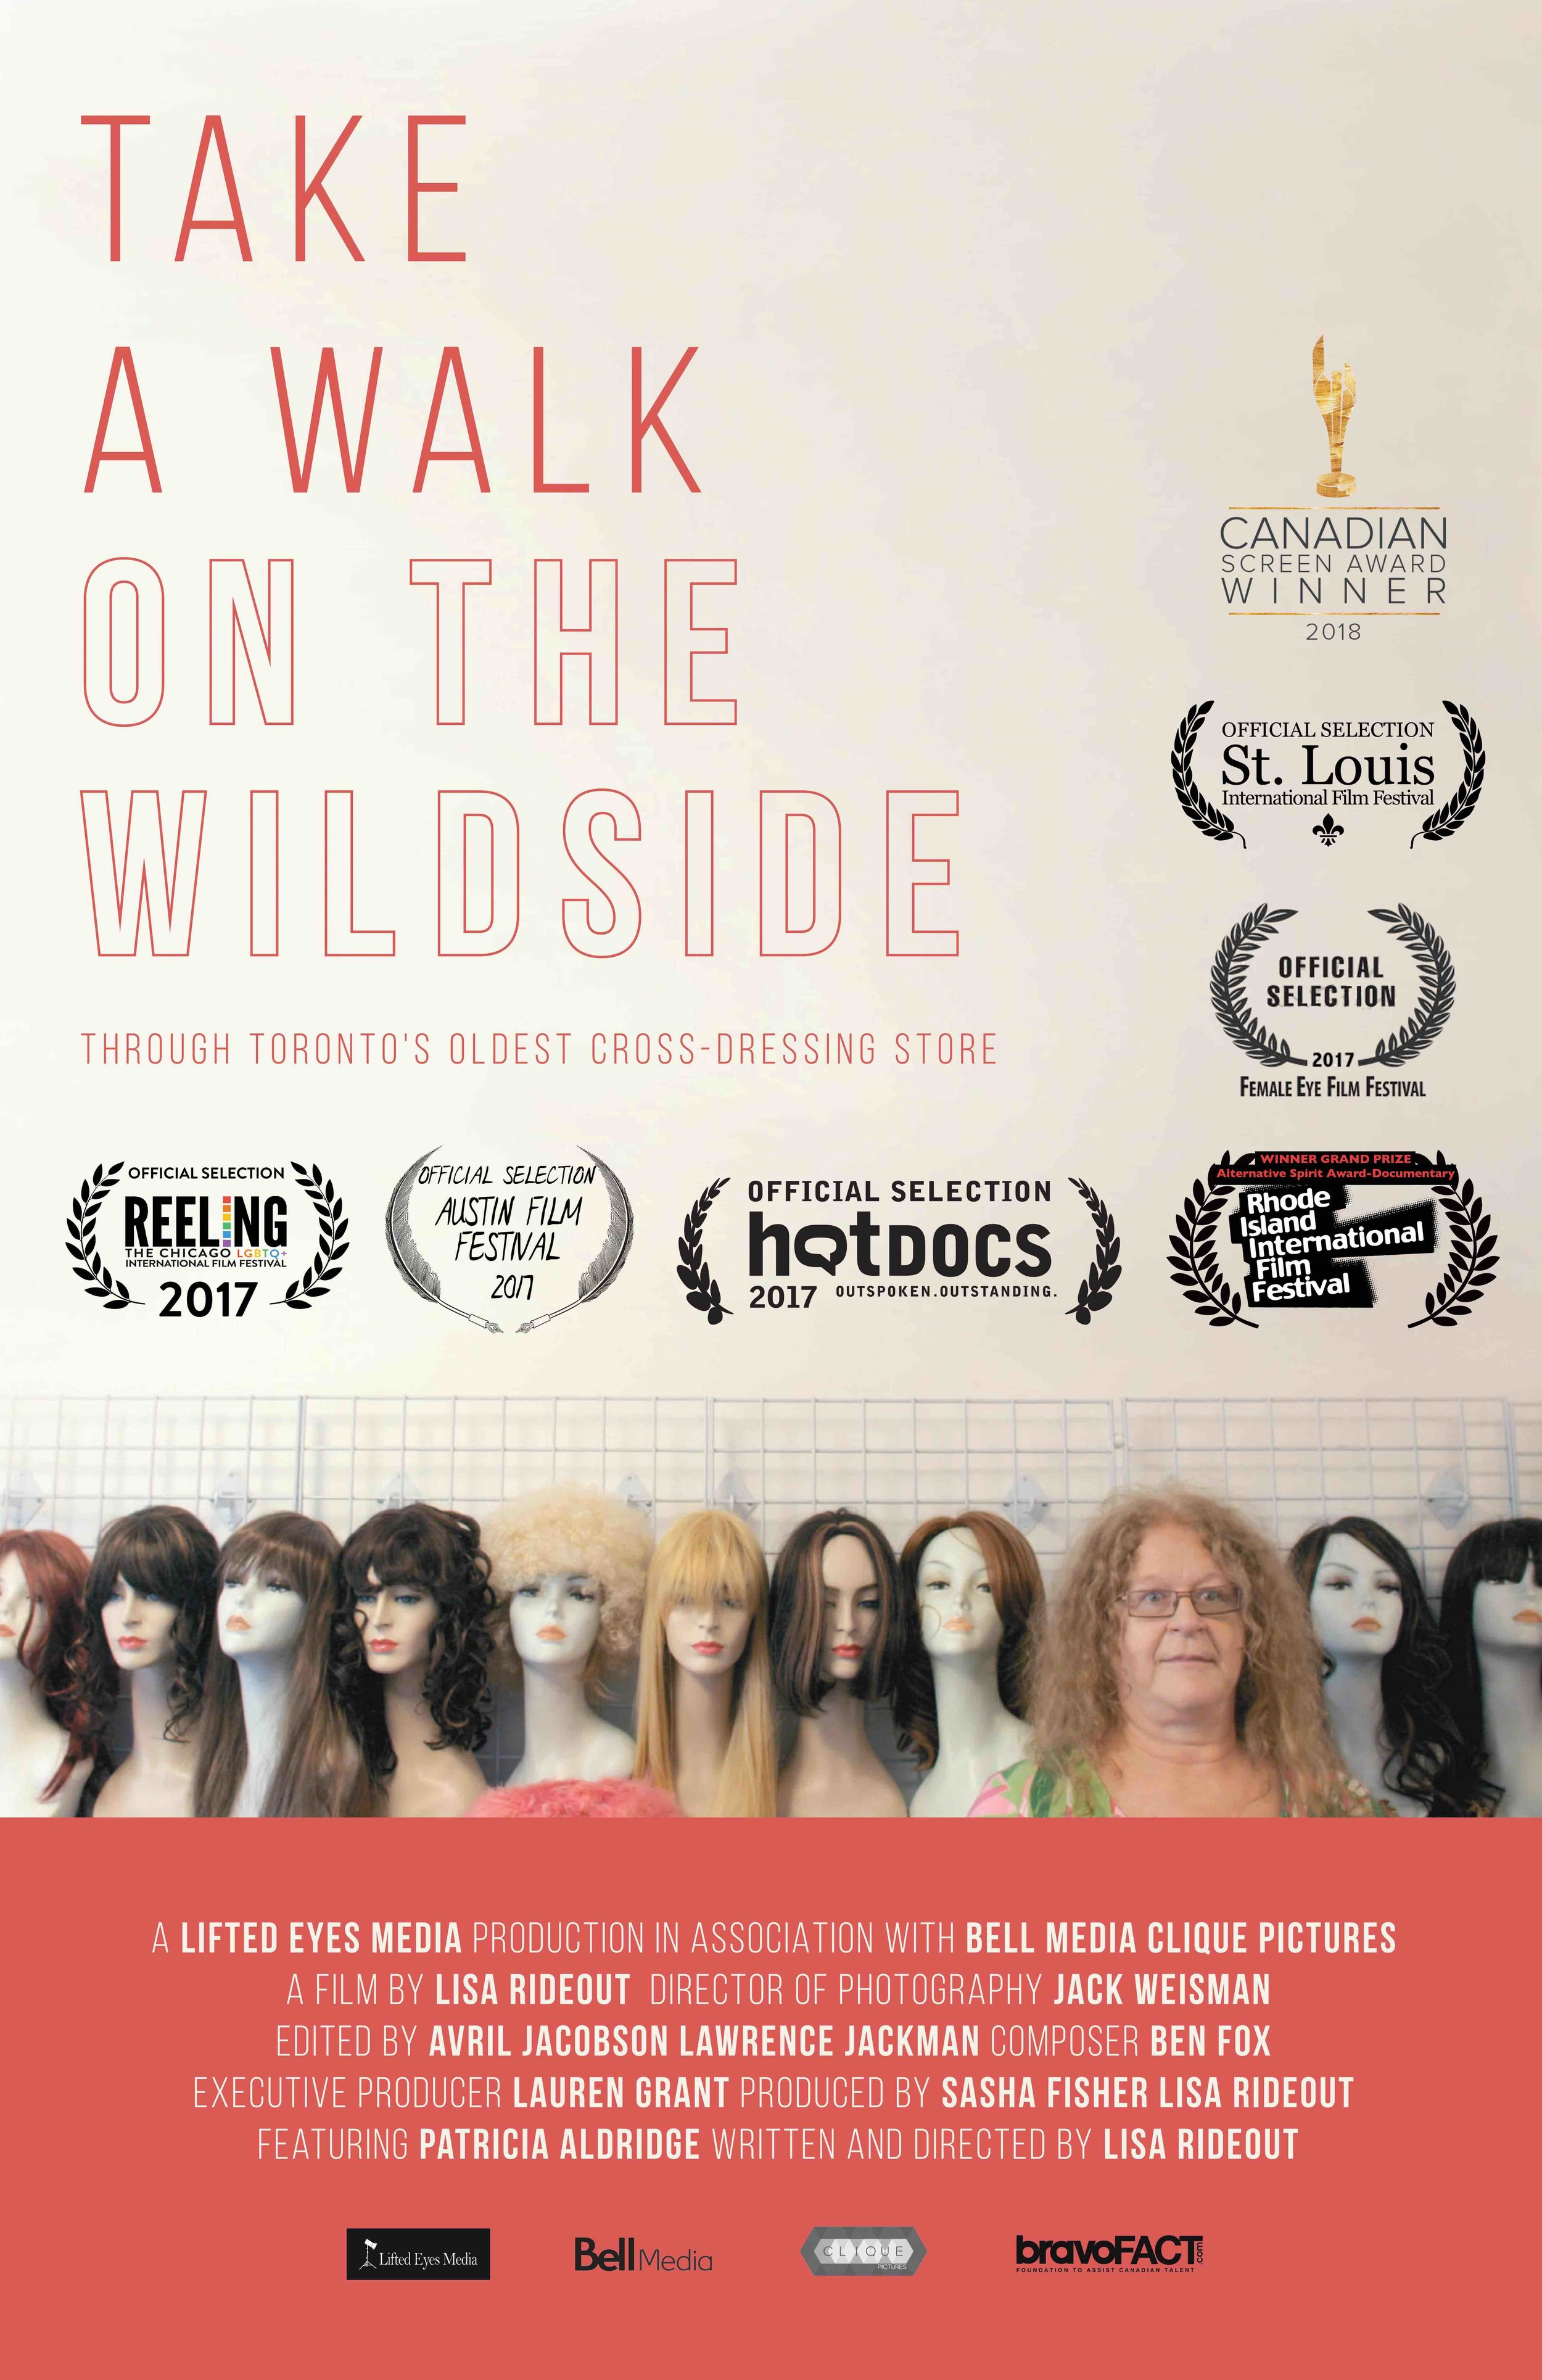 synopsis - In 1987, Wildside, one of Toronto's first cross-dressing stores began offering male to female transformations. Take a Walk on the Wildside is an intimate portrait of a space that continues to be a vital part of the cross-dressing community.